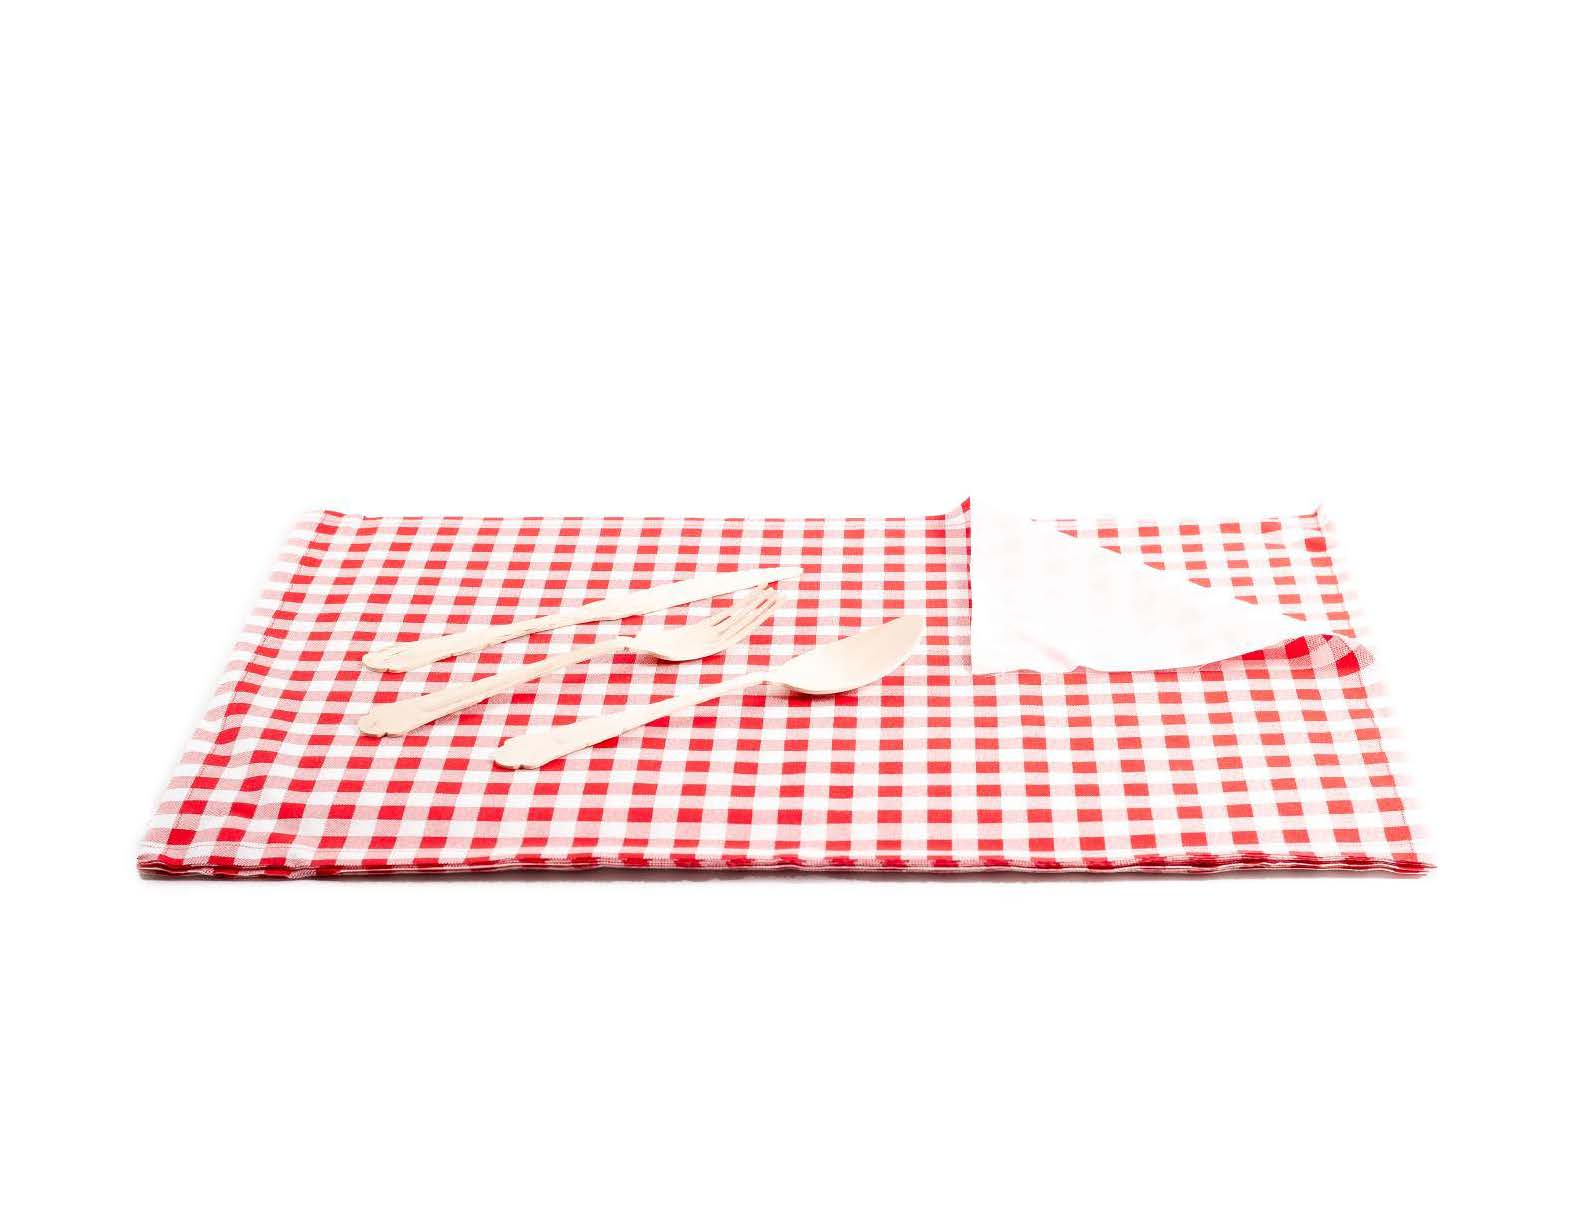 "Red Vichy Cotton Printed Placemat - 18.9"" x 12.6"" - 12 Units"